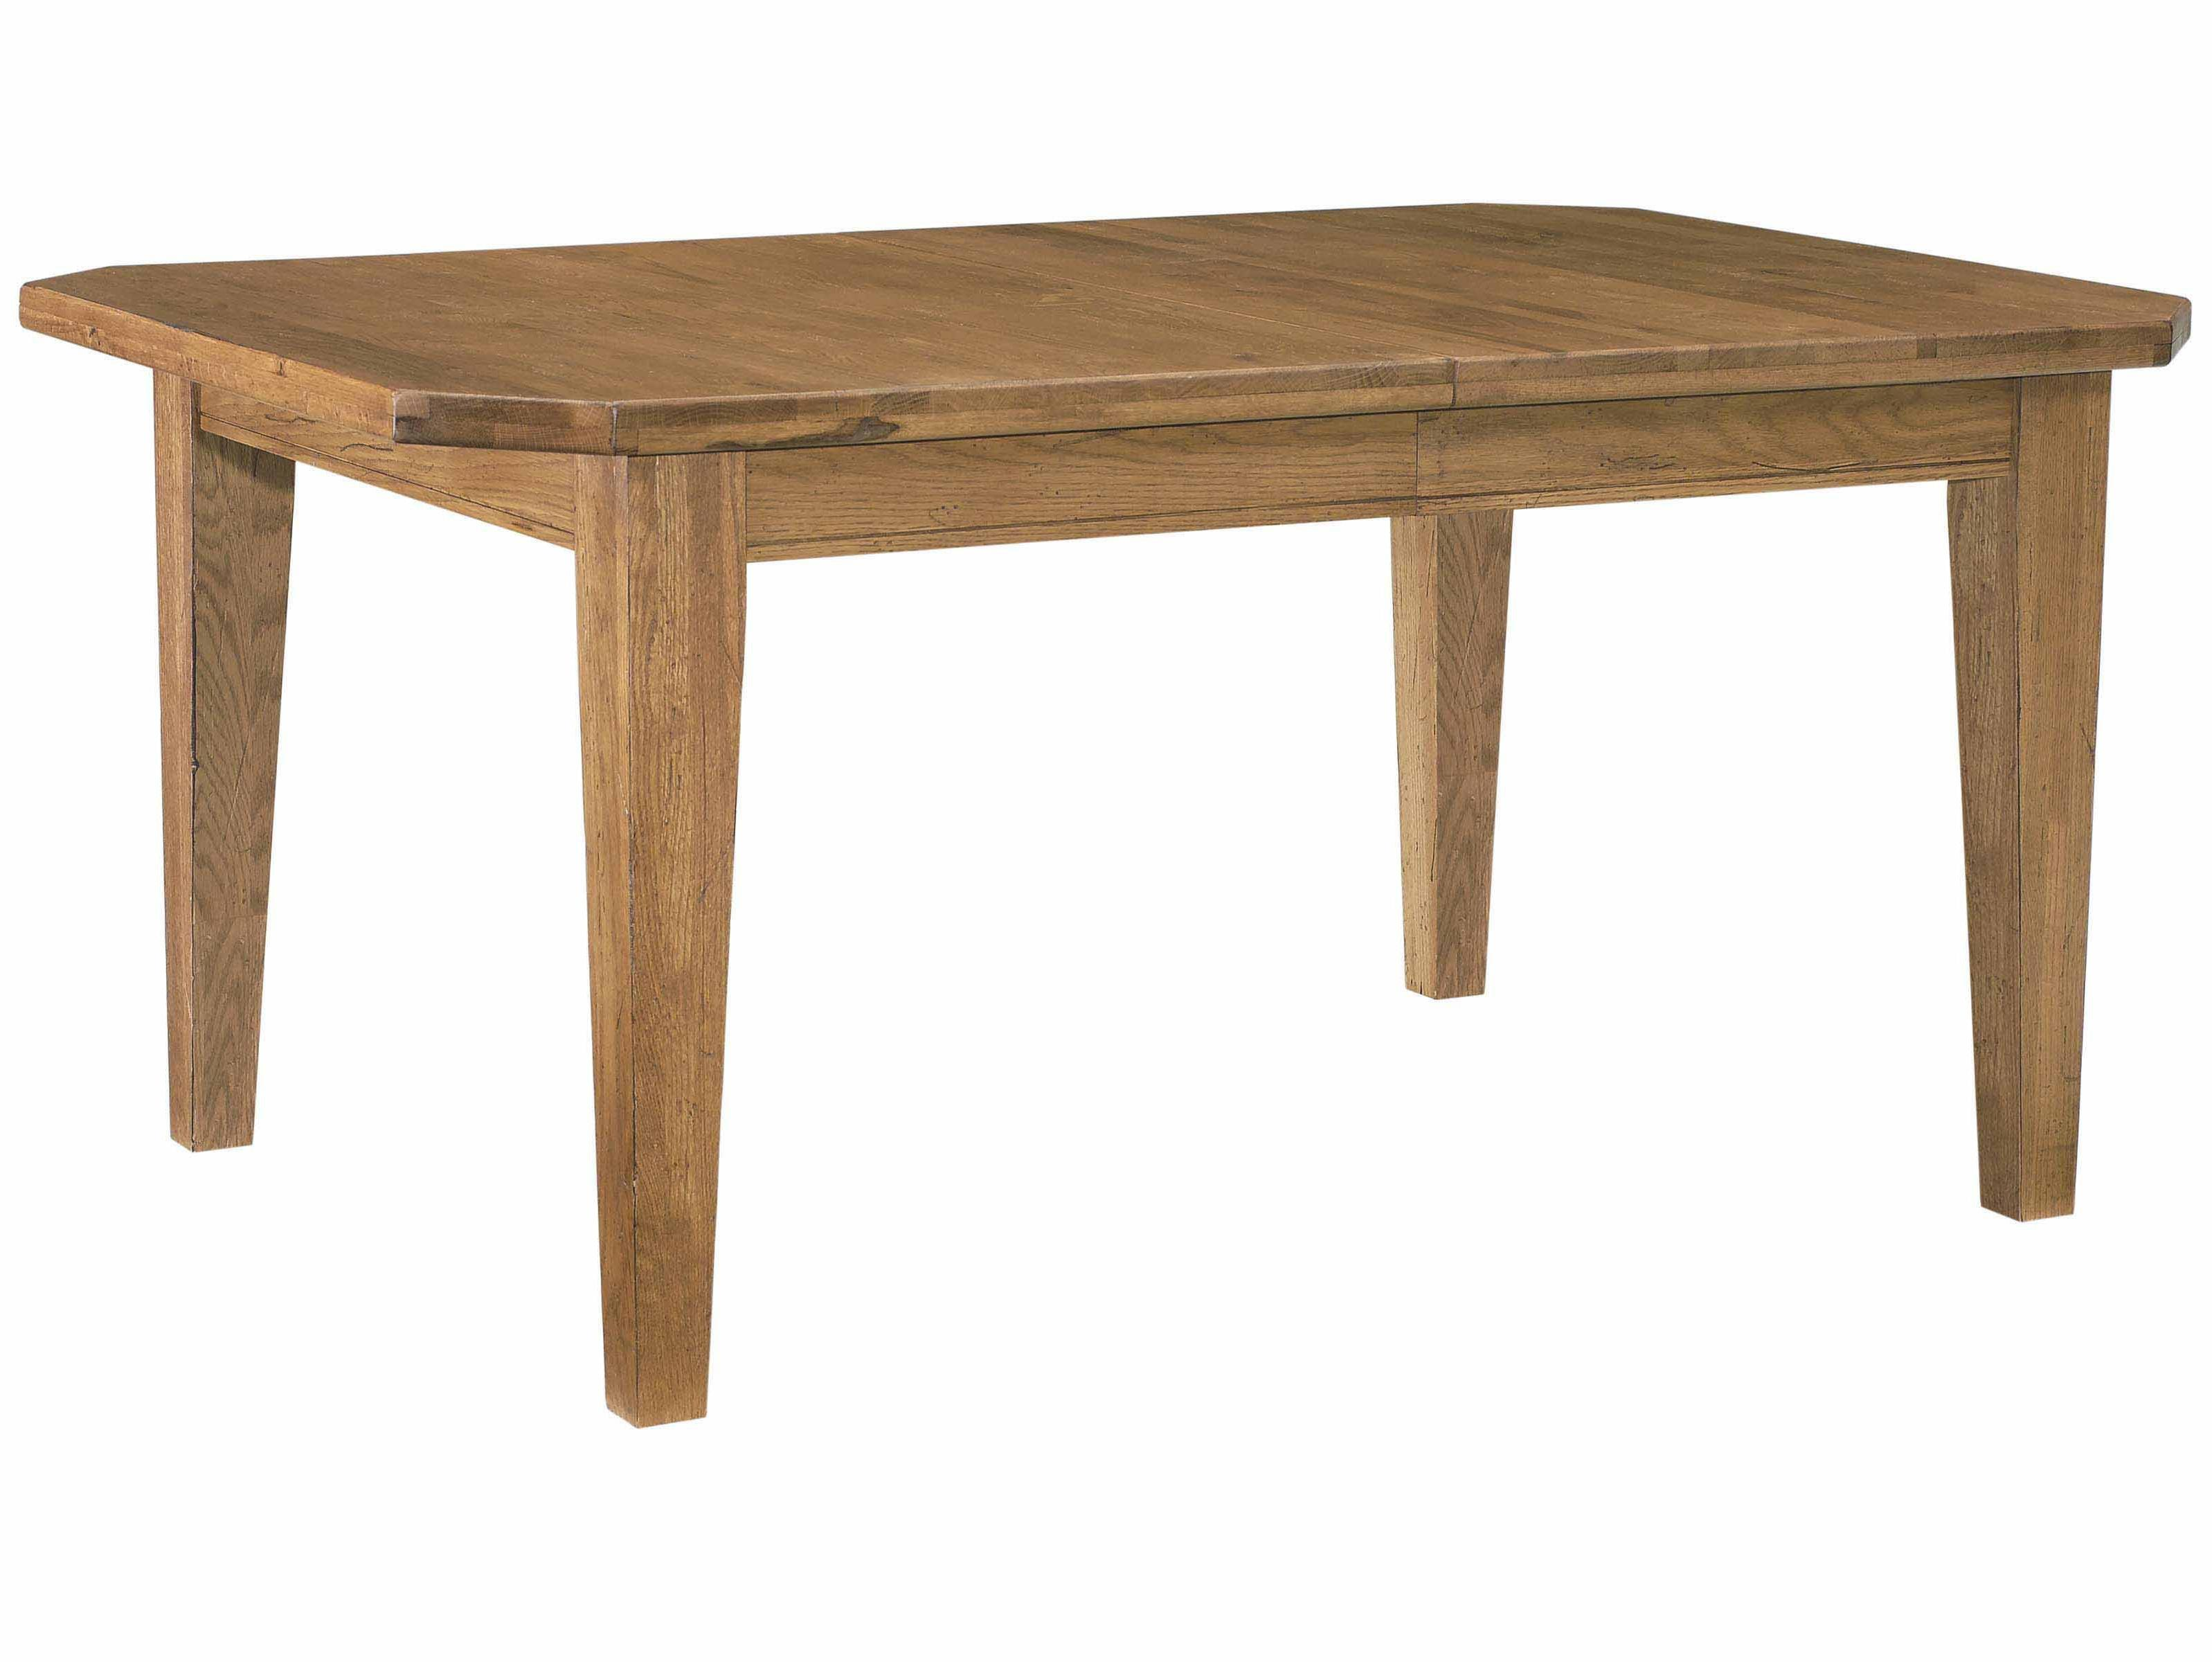 Broyhill Furniture Attic Heirlooms Counter Dining Table - Item Number: 5397-22